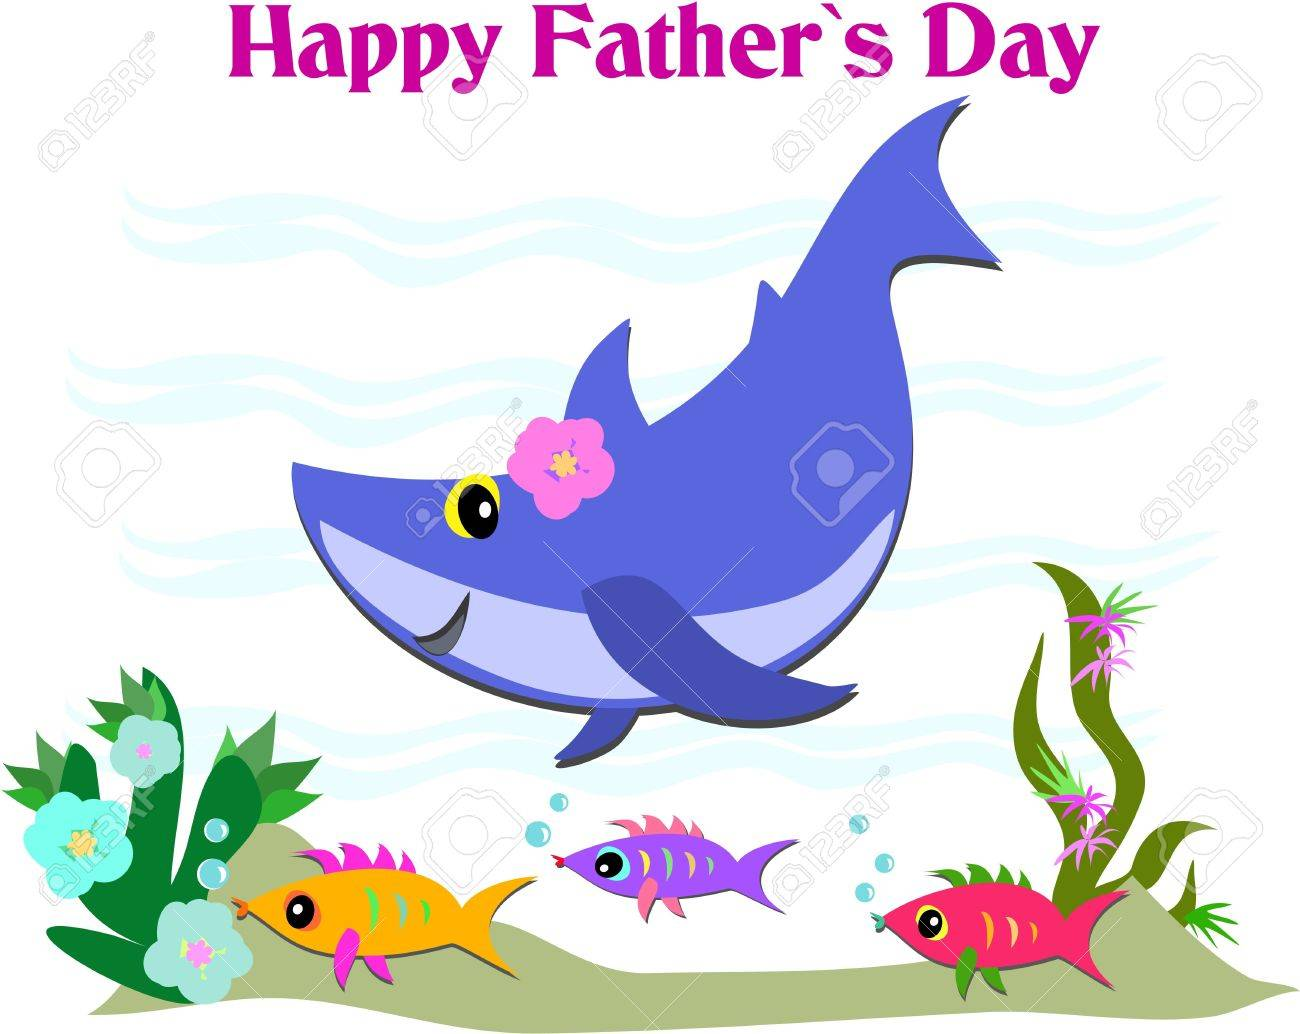 Happy Father's Day Greeting with Shark and Fish Stock Vector - 9330070